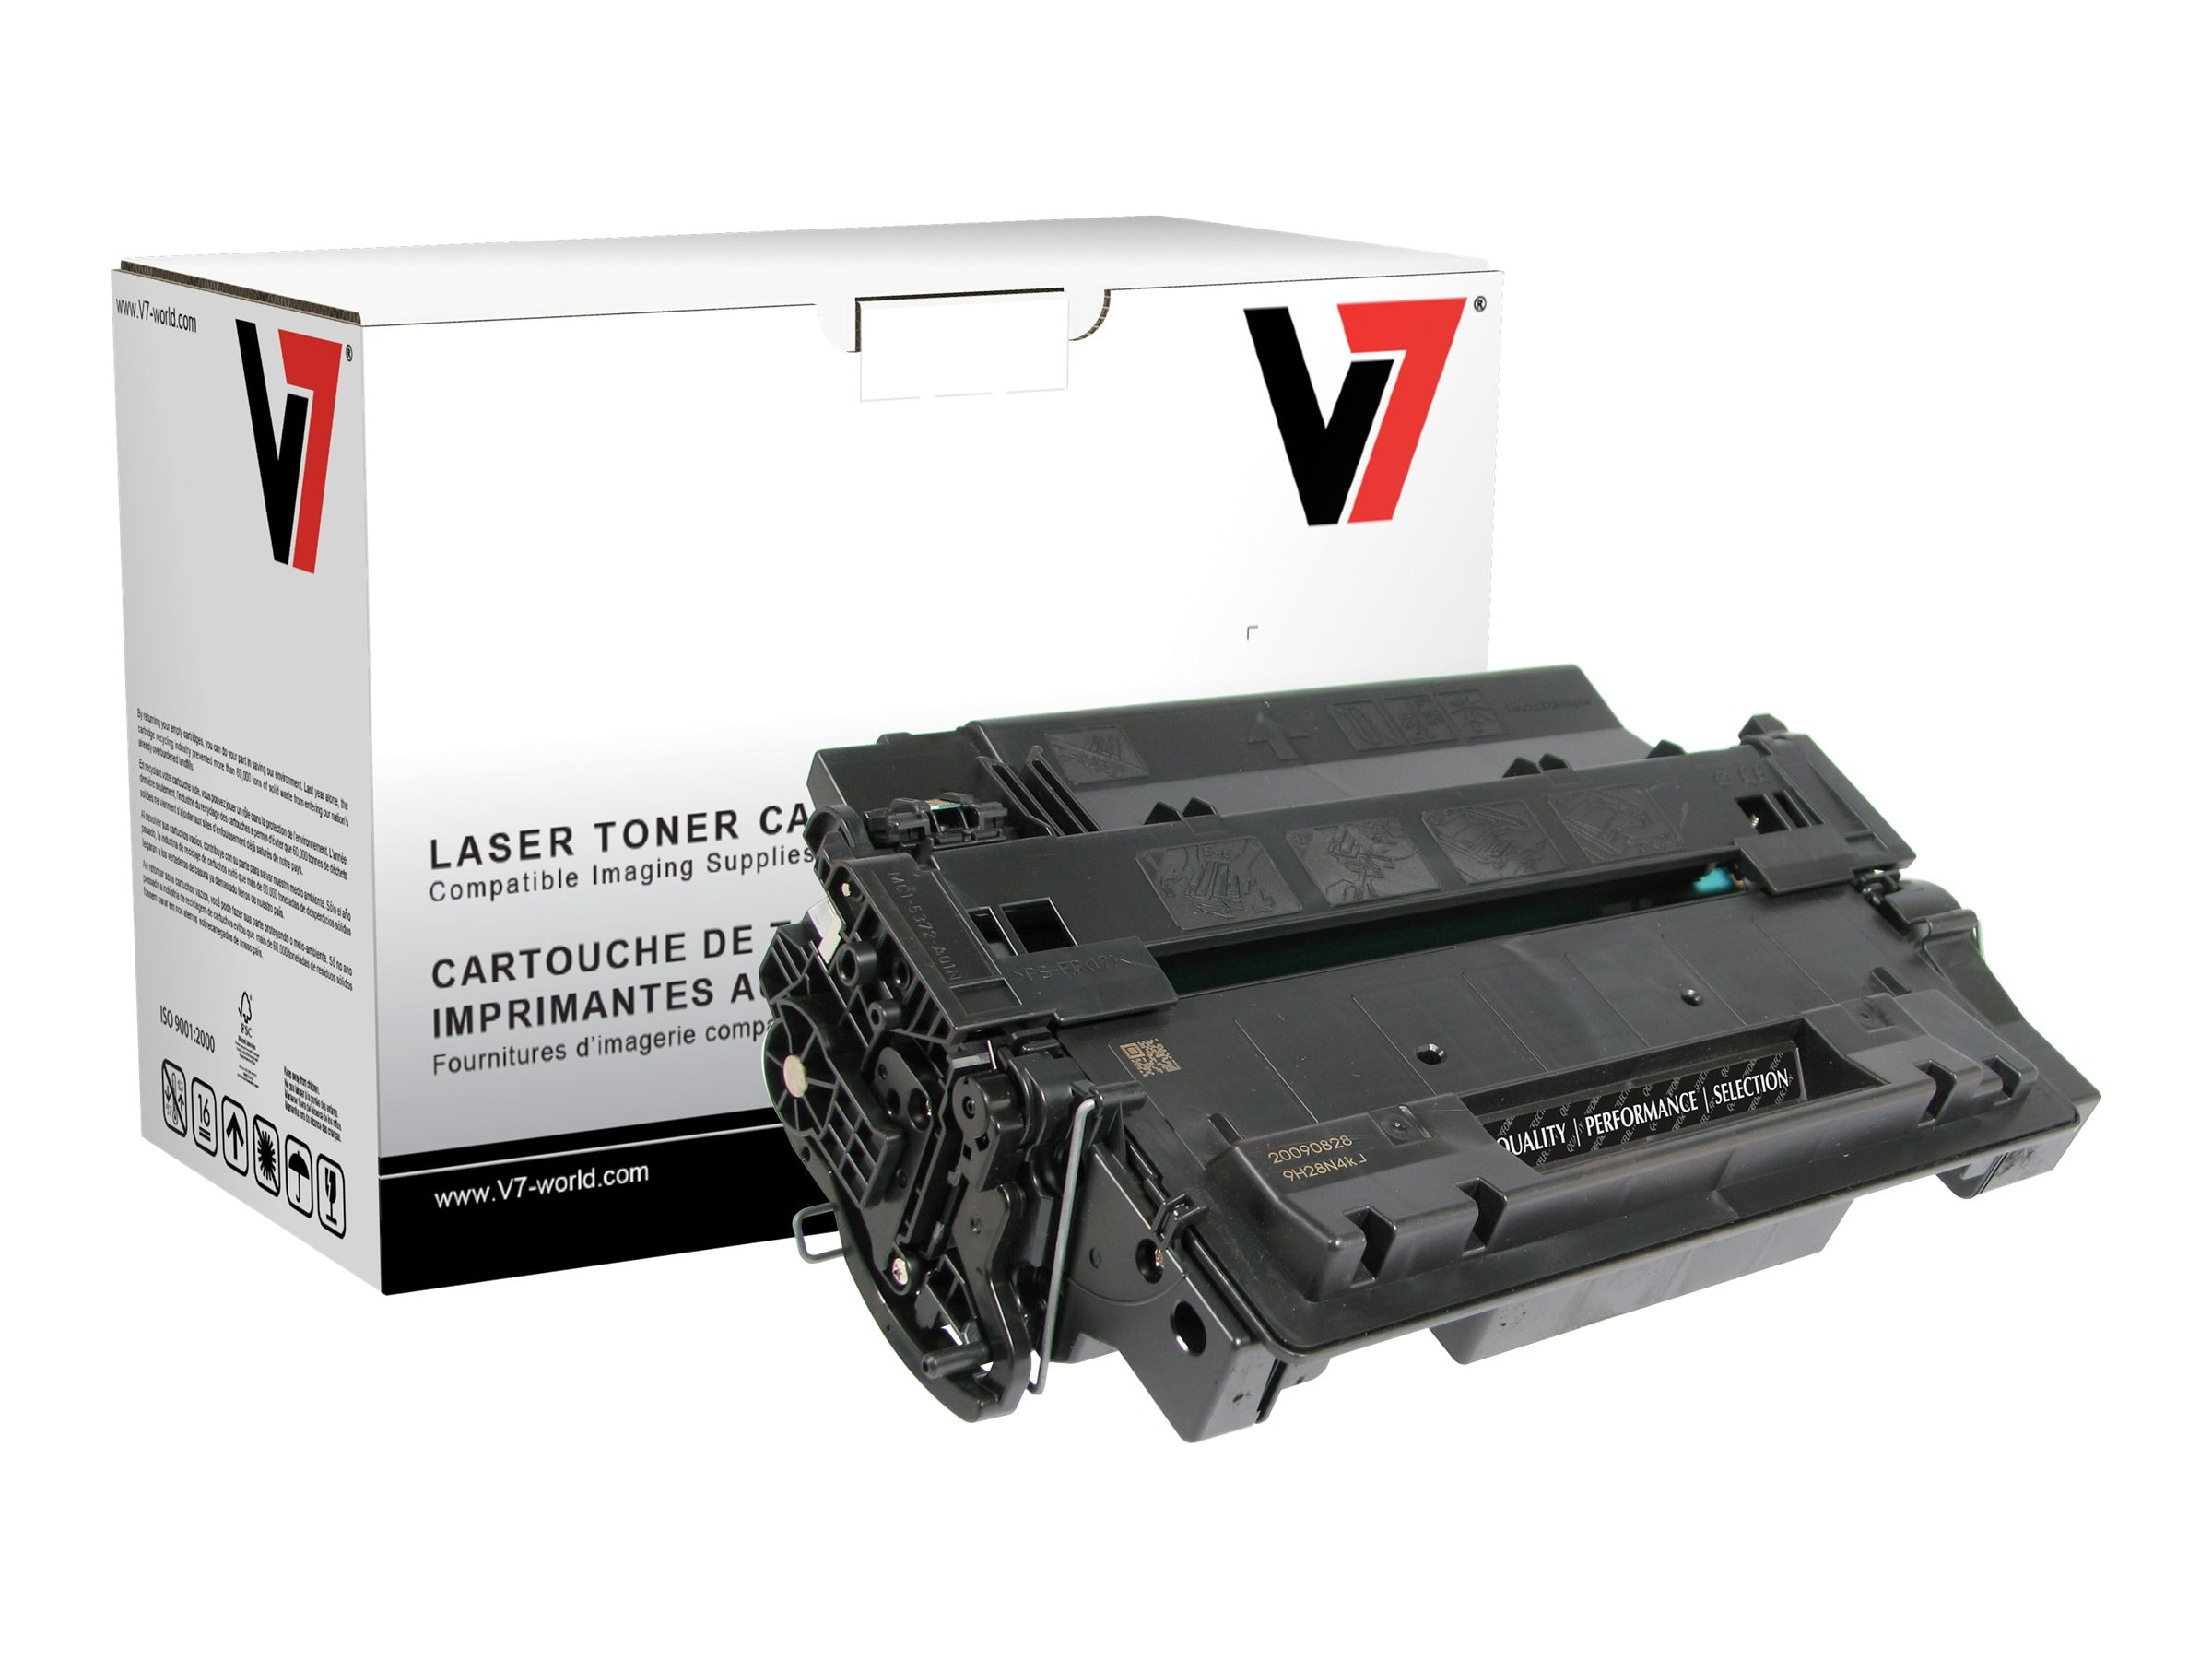 V7 CE255X Black High Yield Toner Cartridge for HP LaserJet P3015 (TAA Compliant), THK255XH